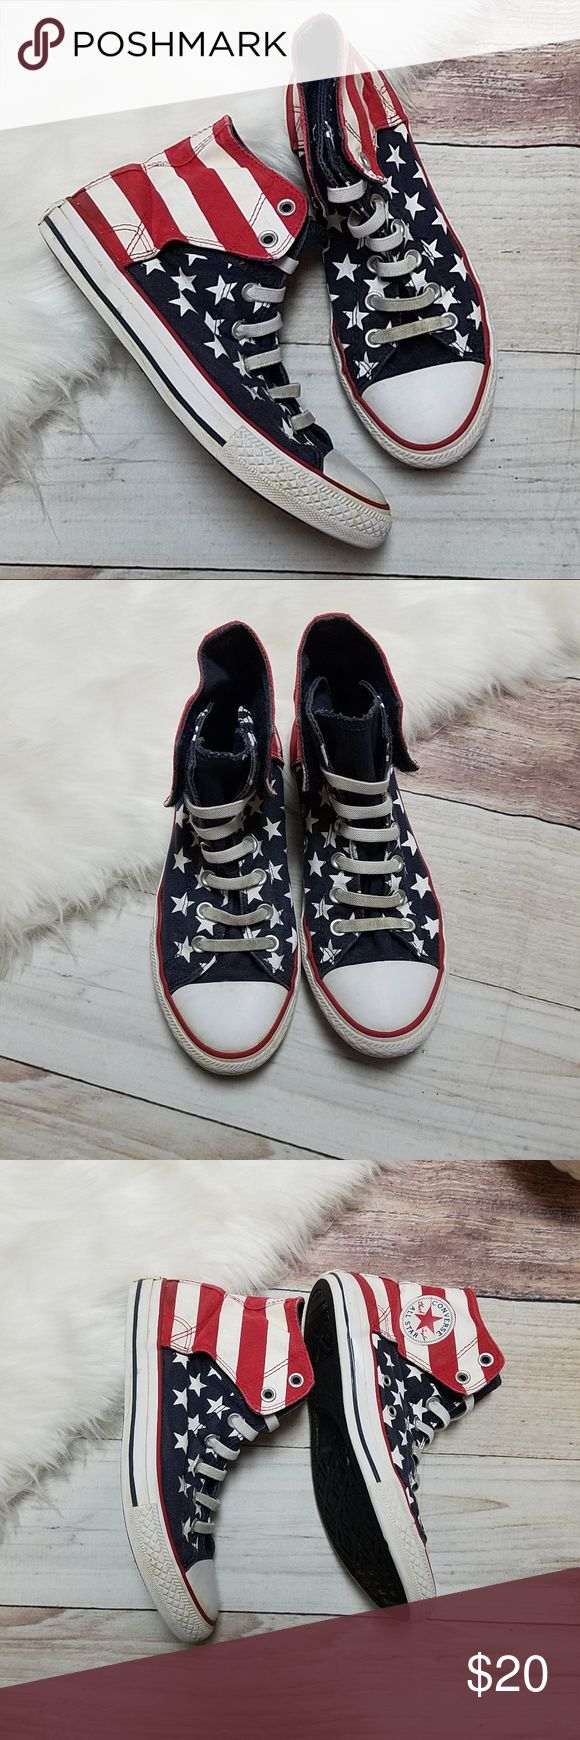 "Converse high tops american flag design Converse high tops. American flag design. Size 5. Great condition. Shoes measure 10"" long. Converse Shoes Sneakers"